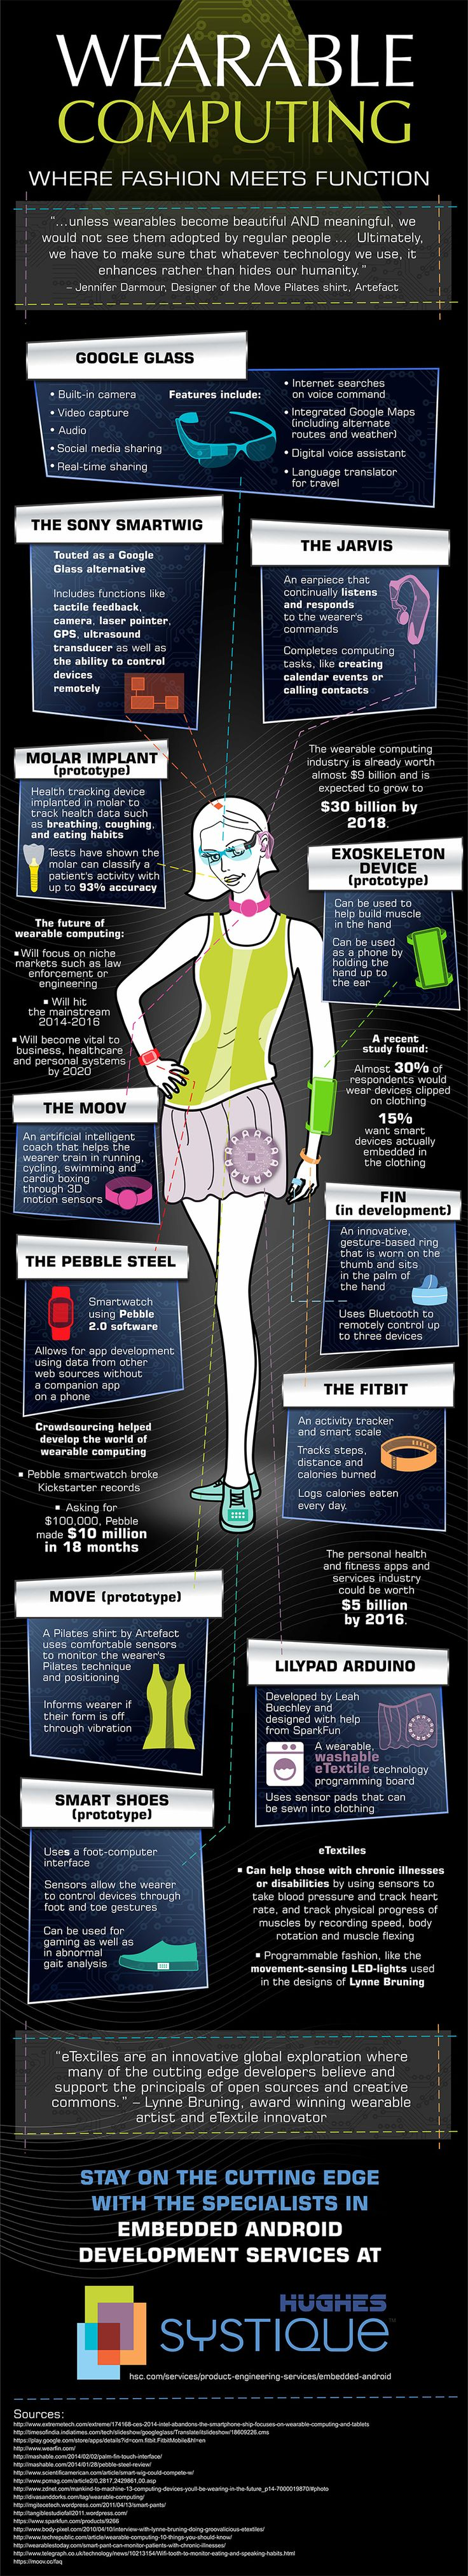 Wearable Computing: How Android Will Soon Be Embedded In Our Fashion Accessories [by Hughes Systique™ -- via #tipsographic]. More at tipsographic.com